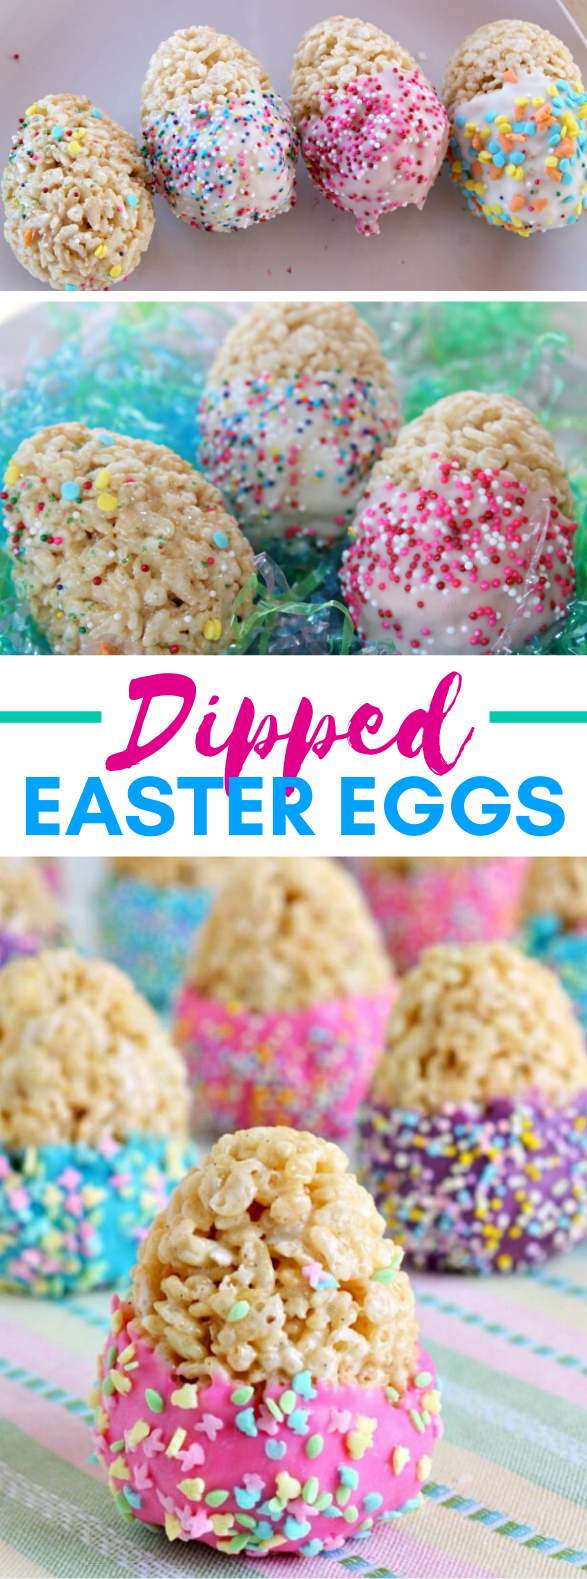 DIPPED EASTER EGG TREATS #desserts #partyrecipe